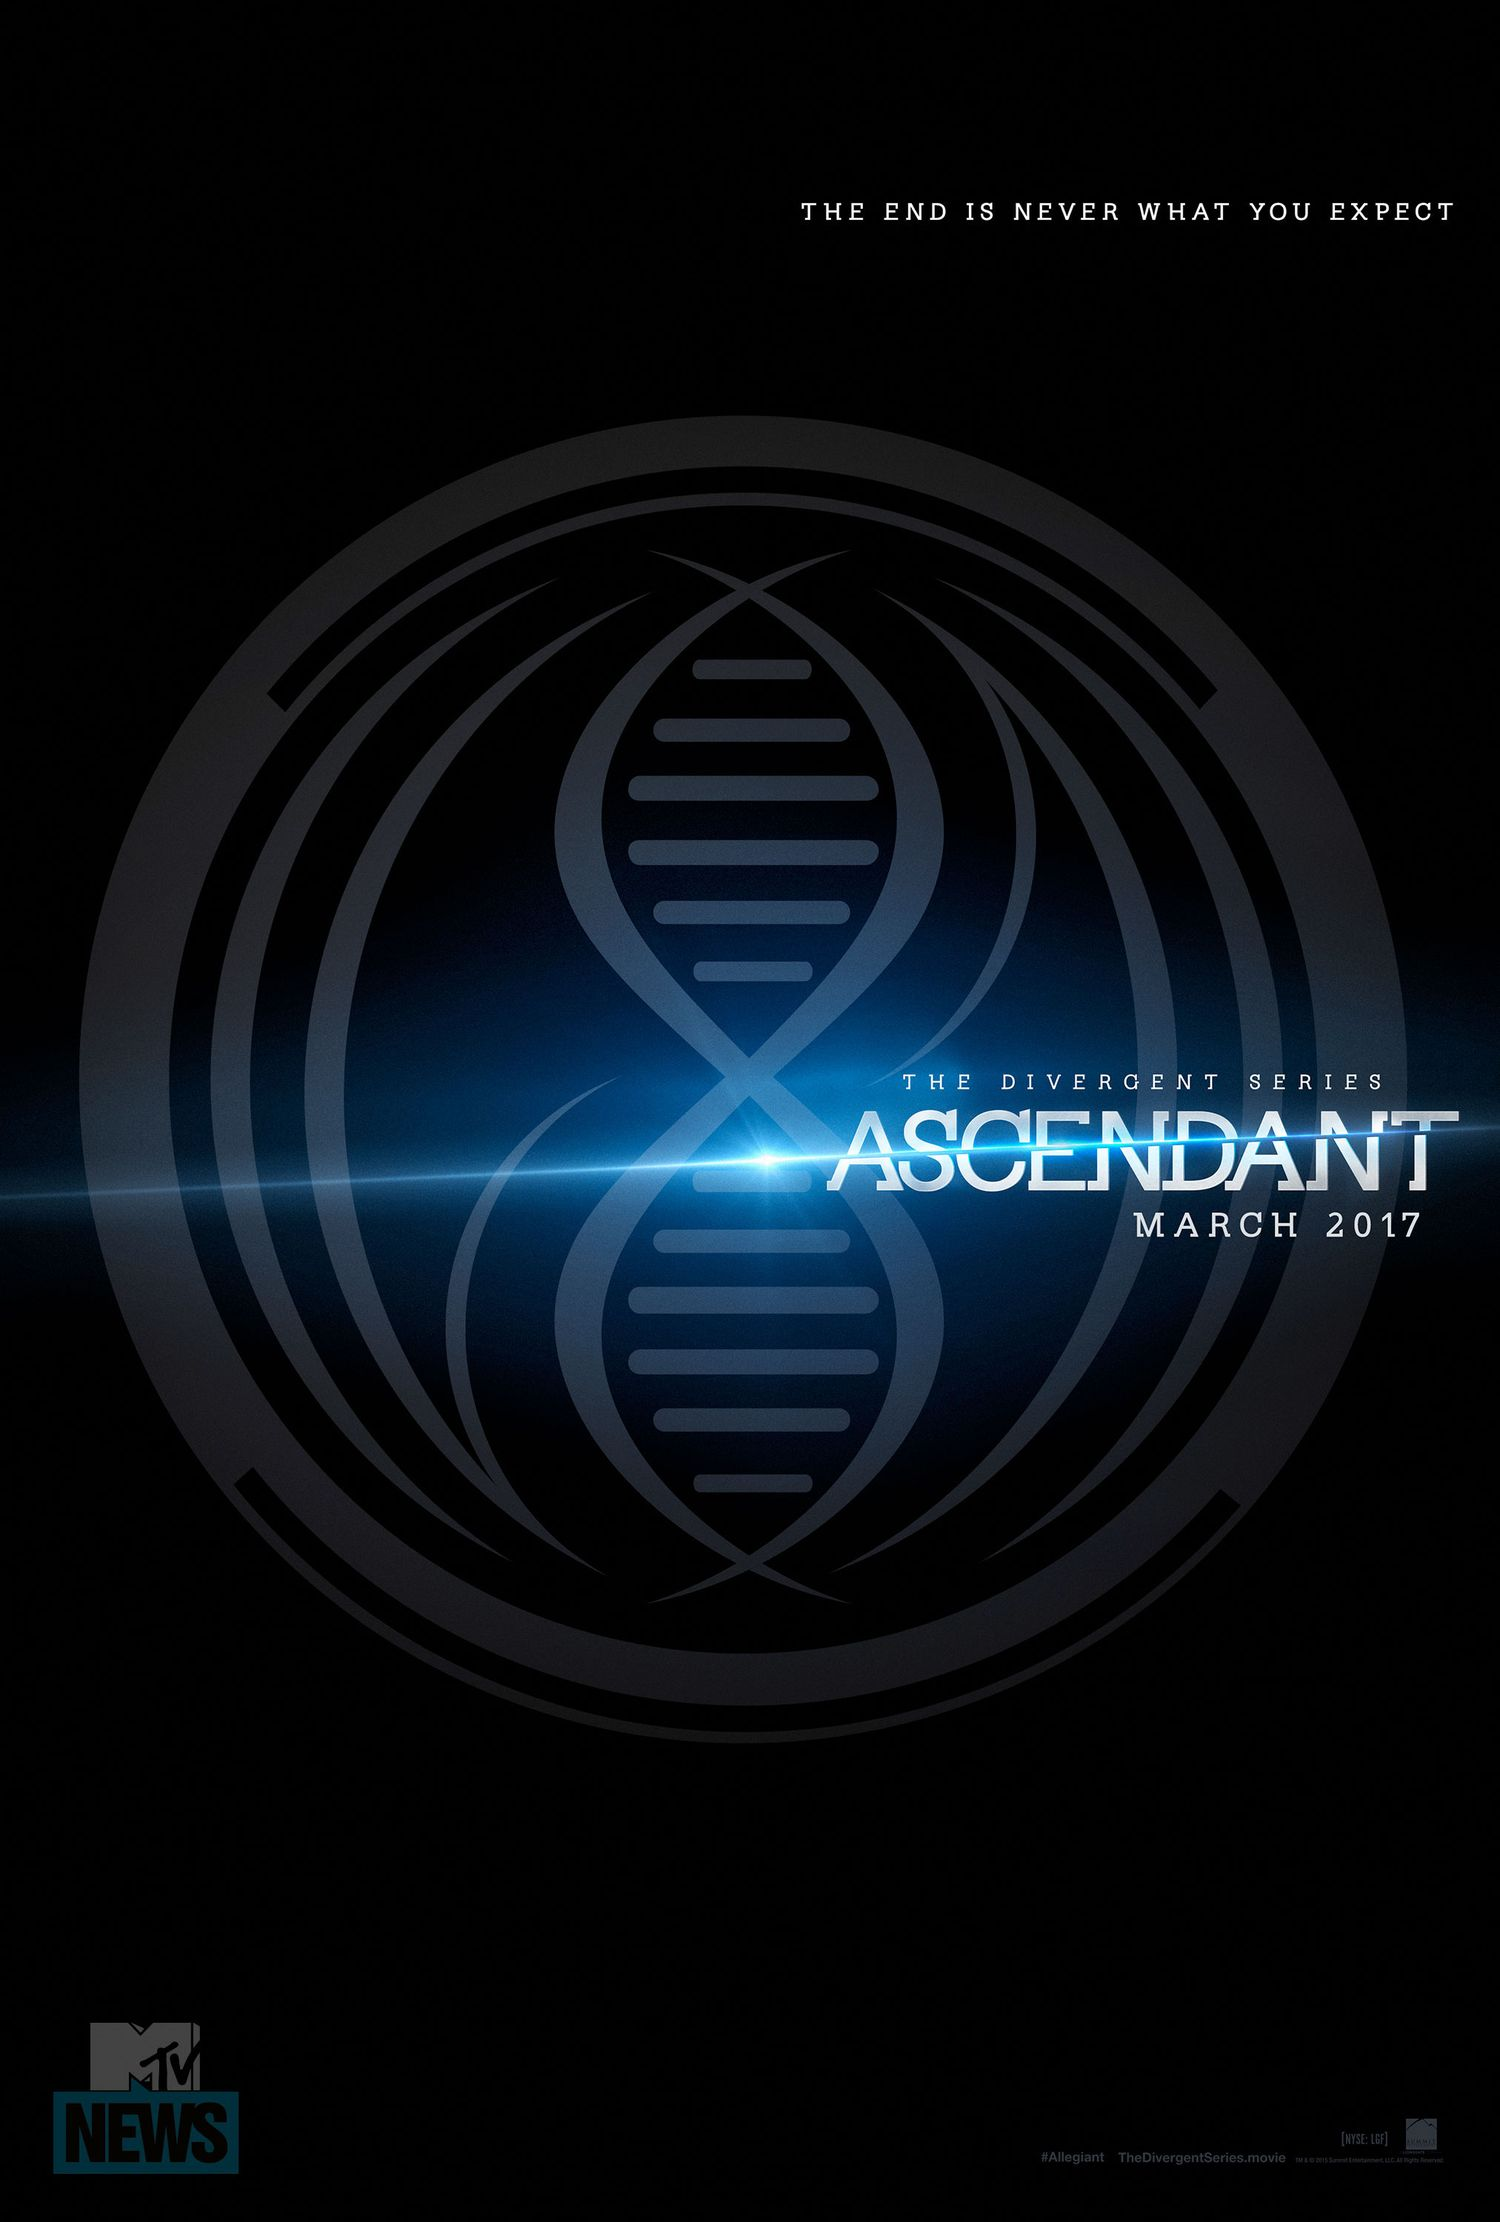 divergent_series_ascendant_movie_poster_1